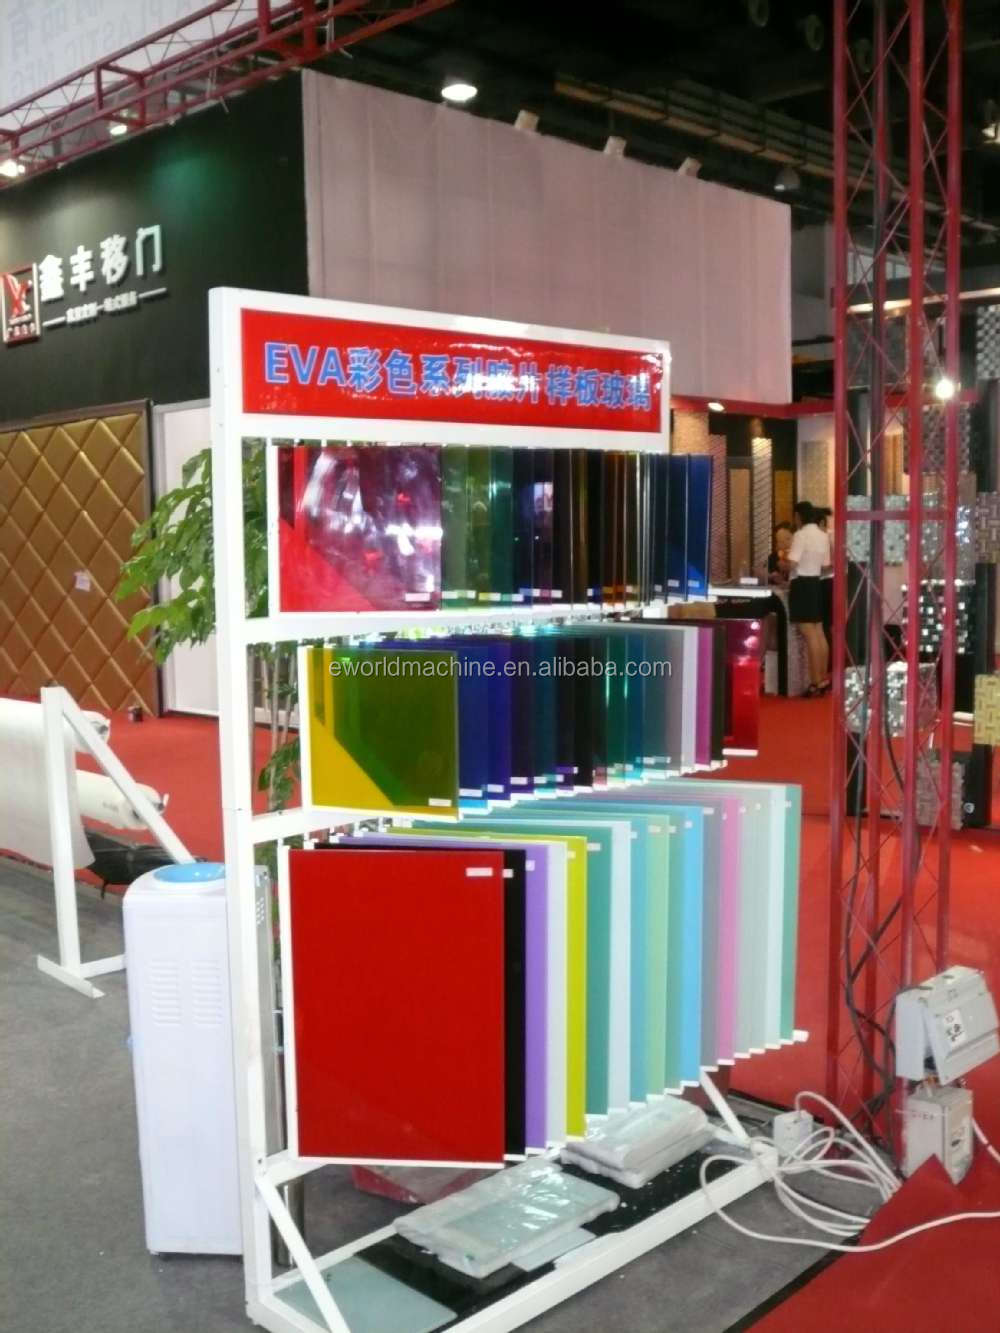 2019 outdoor glass eva film for laminated glass from World machine